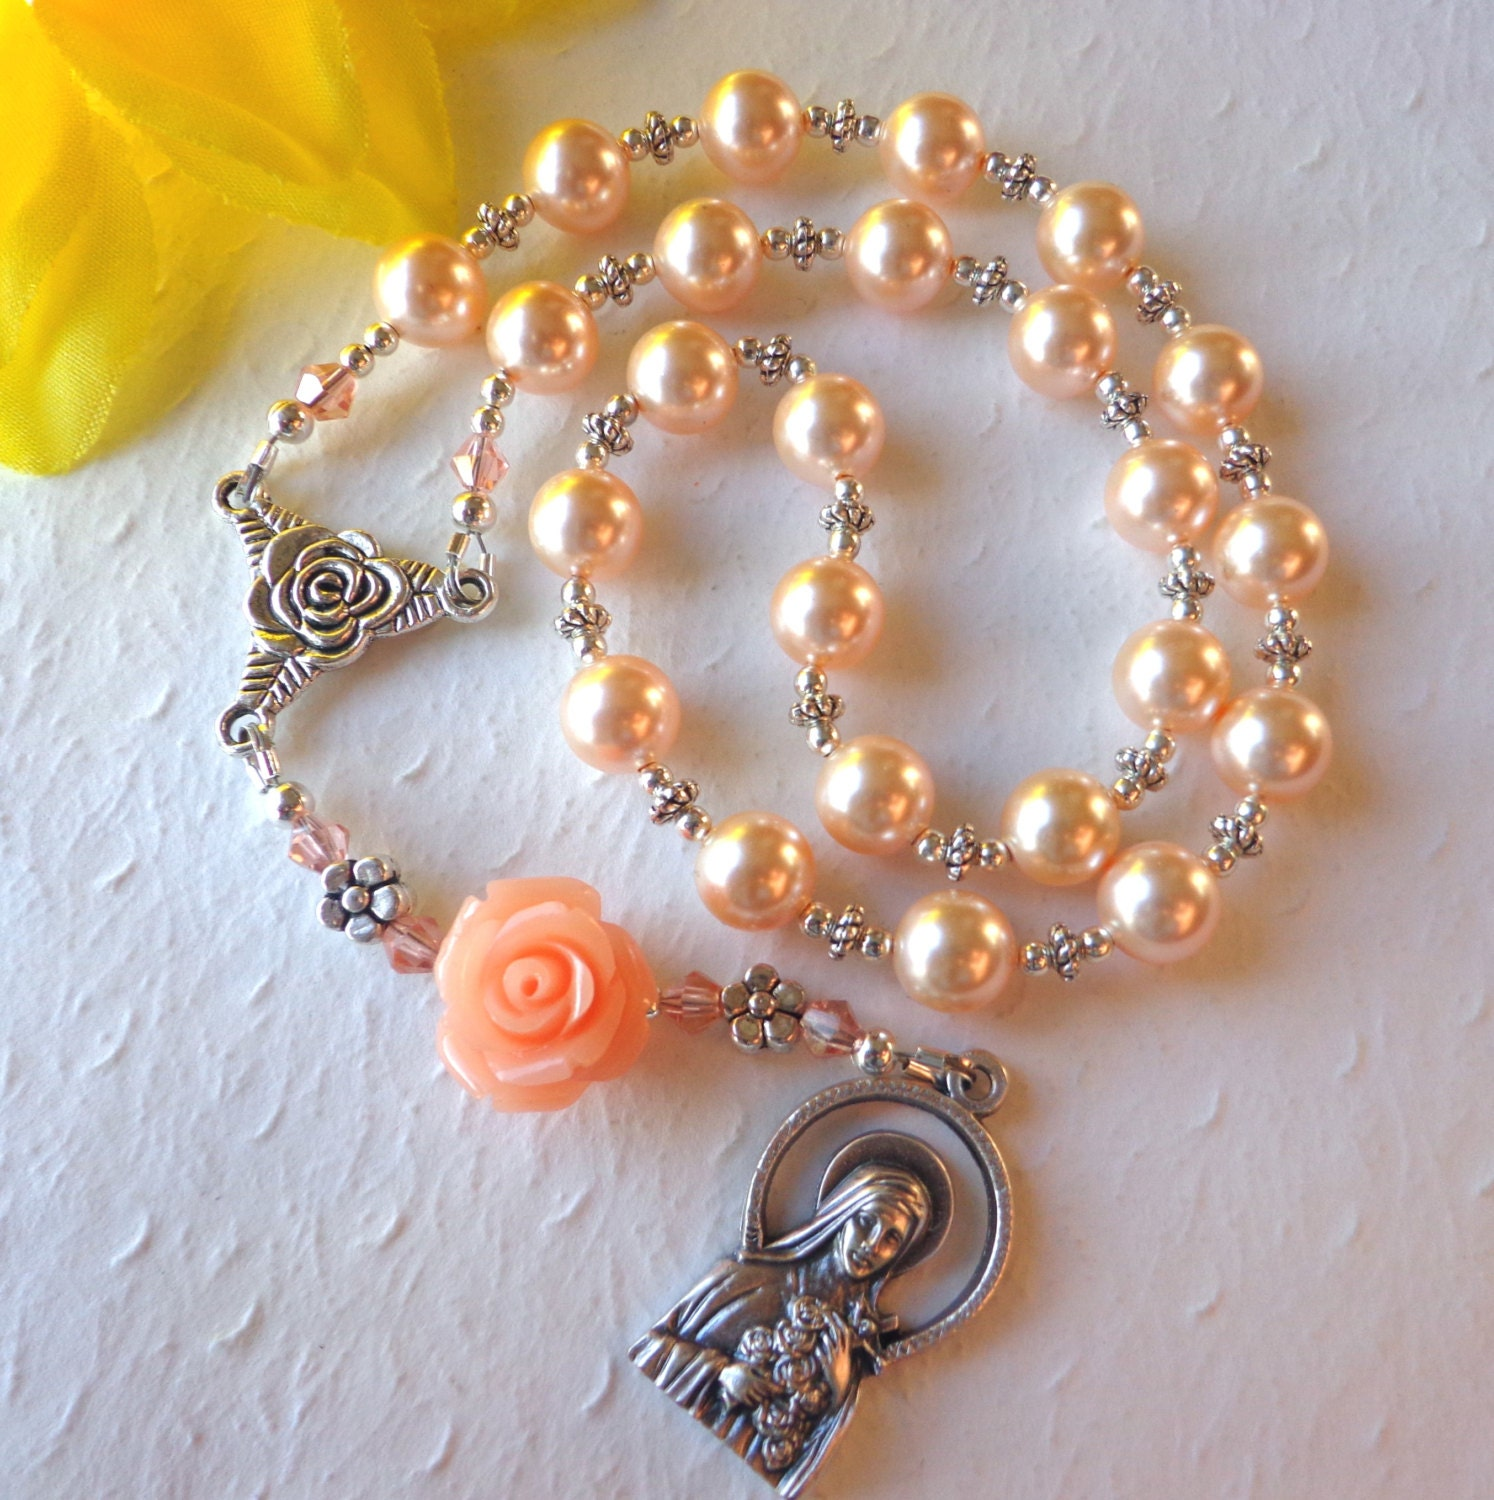 SALE St Therese Chaplet The Little Flower Rosary